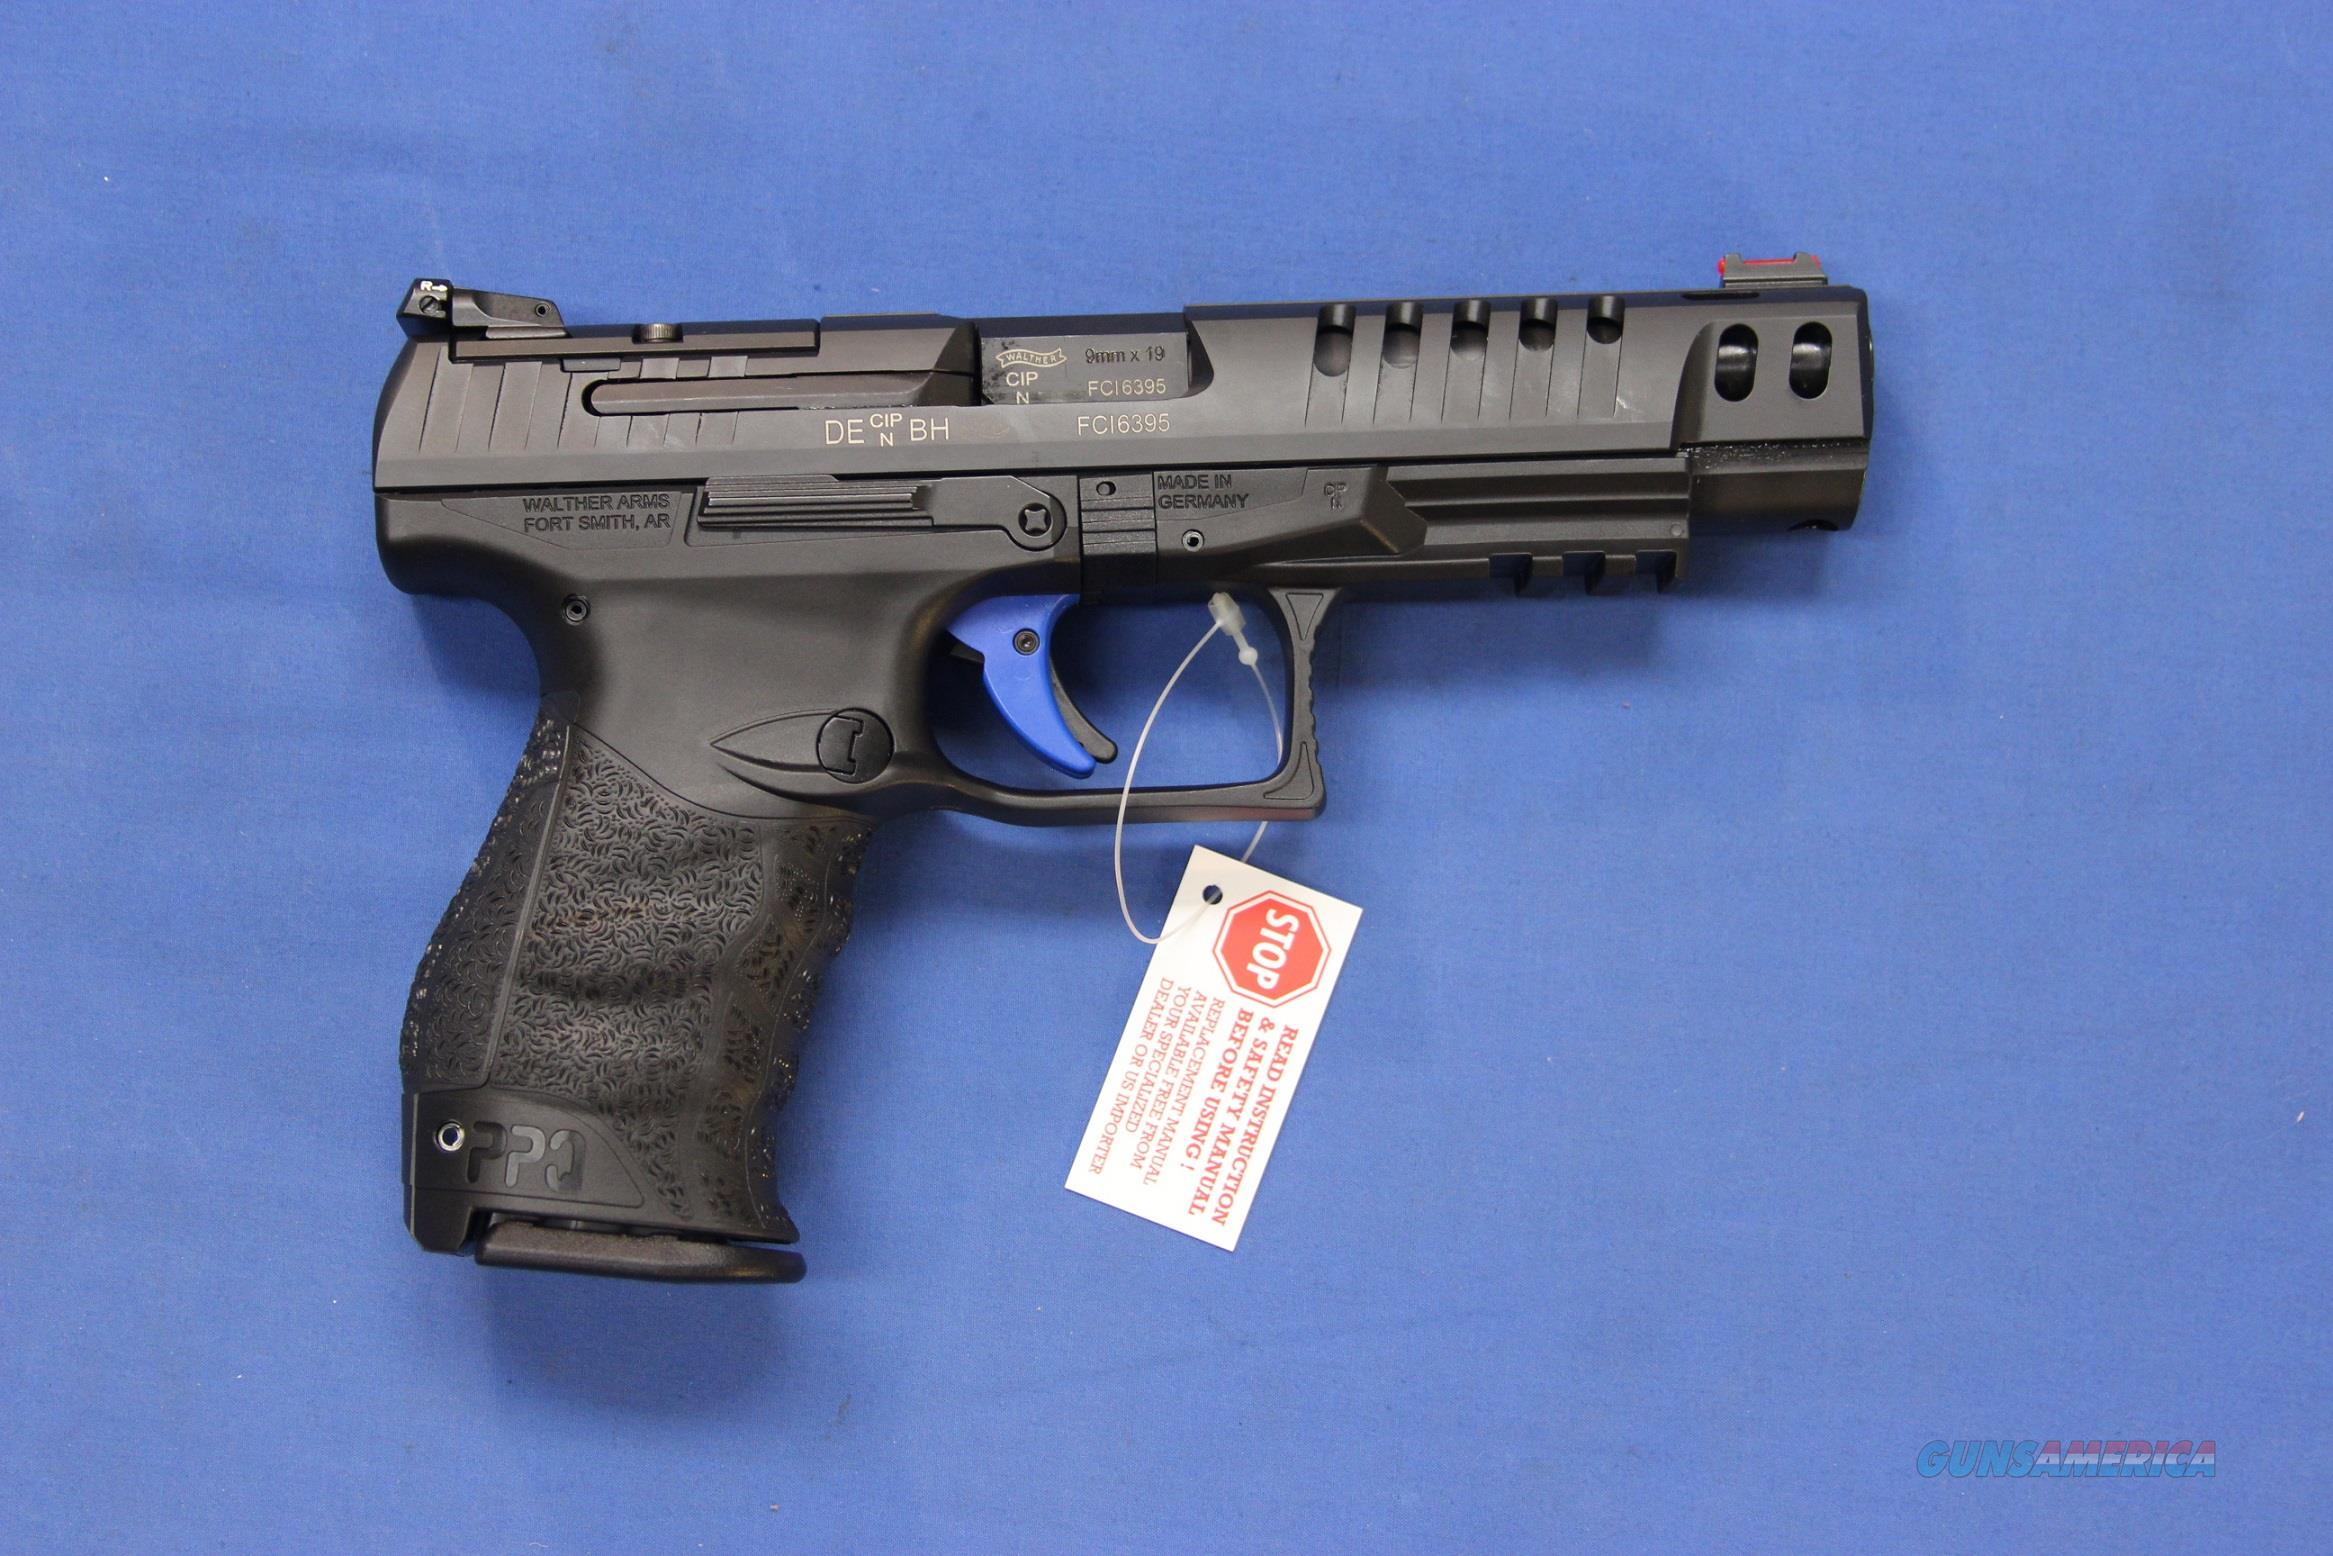 WALTHER Q5 MATCH 9mm COMPETITION PISTOL - NEW!  Guns > Pistols > Walther Pistols > Post WWII > P99/PPQ